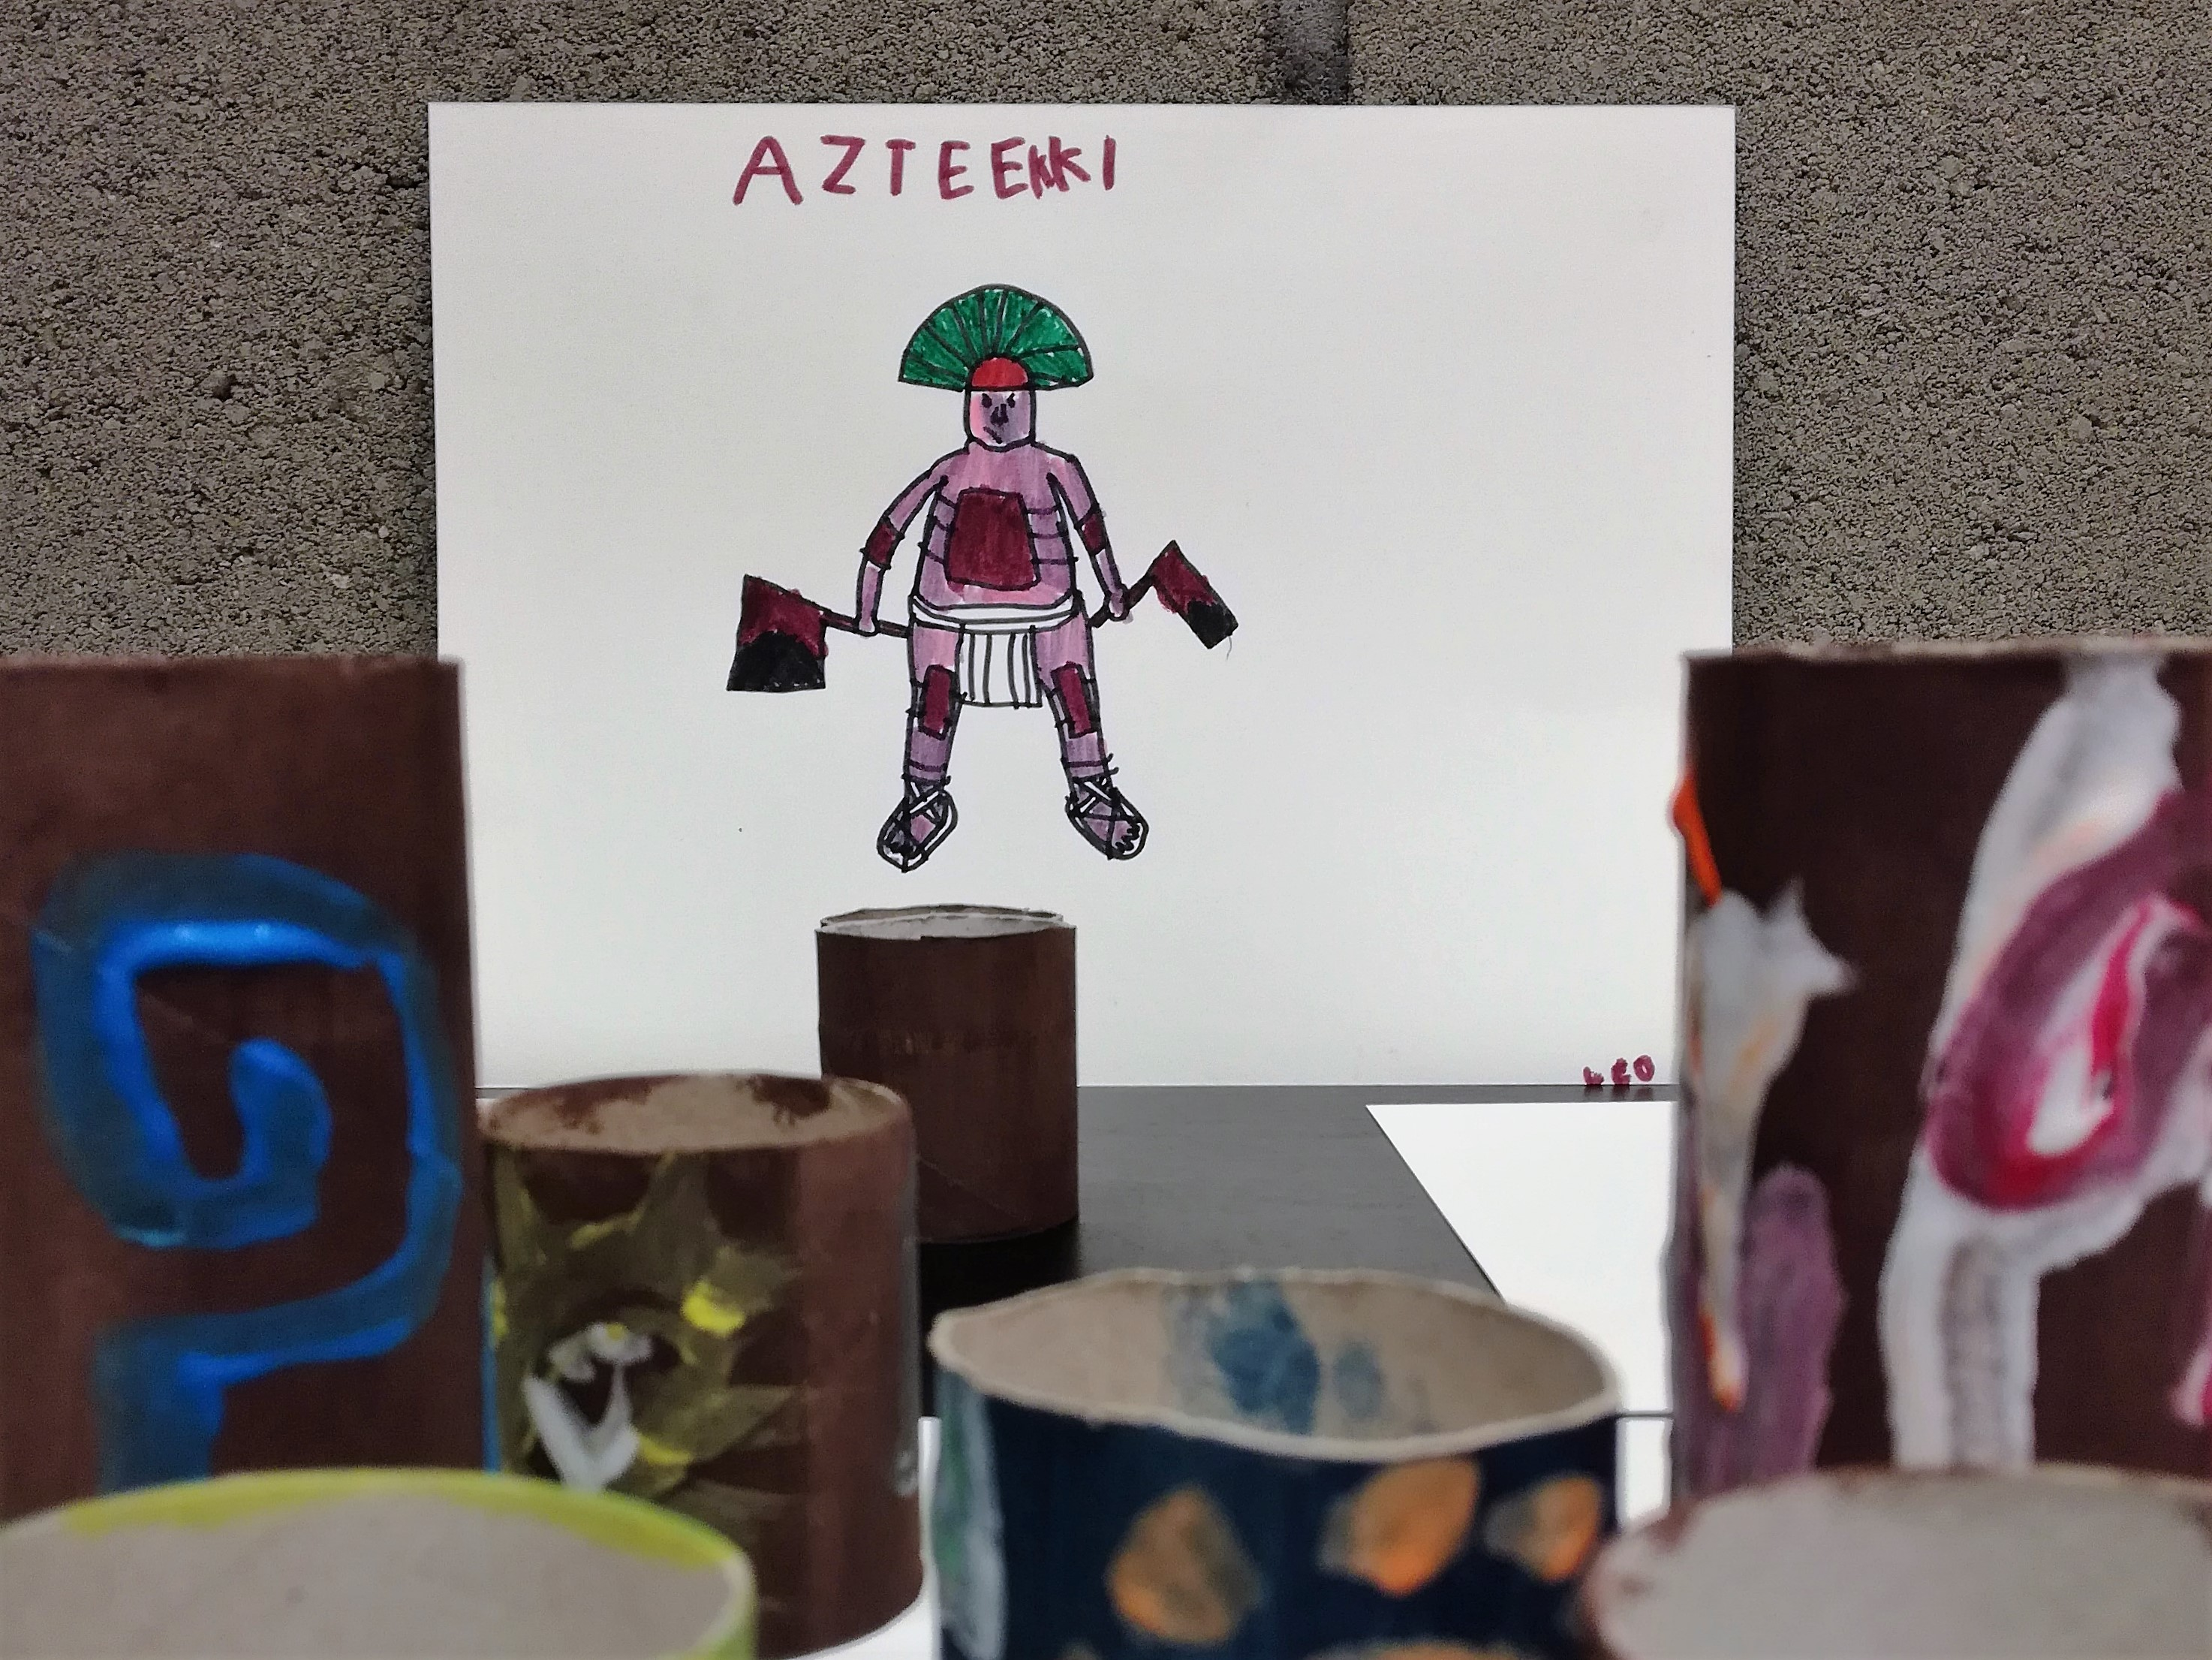 Aztec Culture Workshop